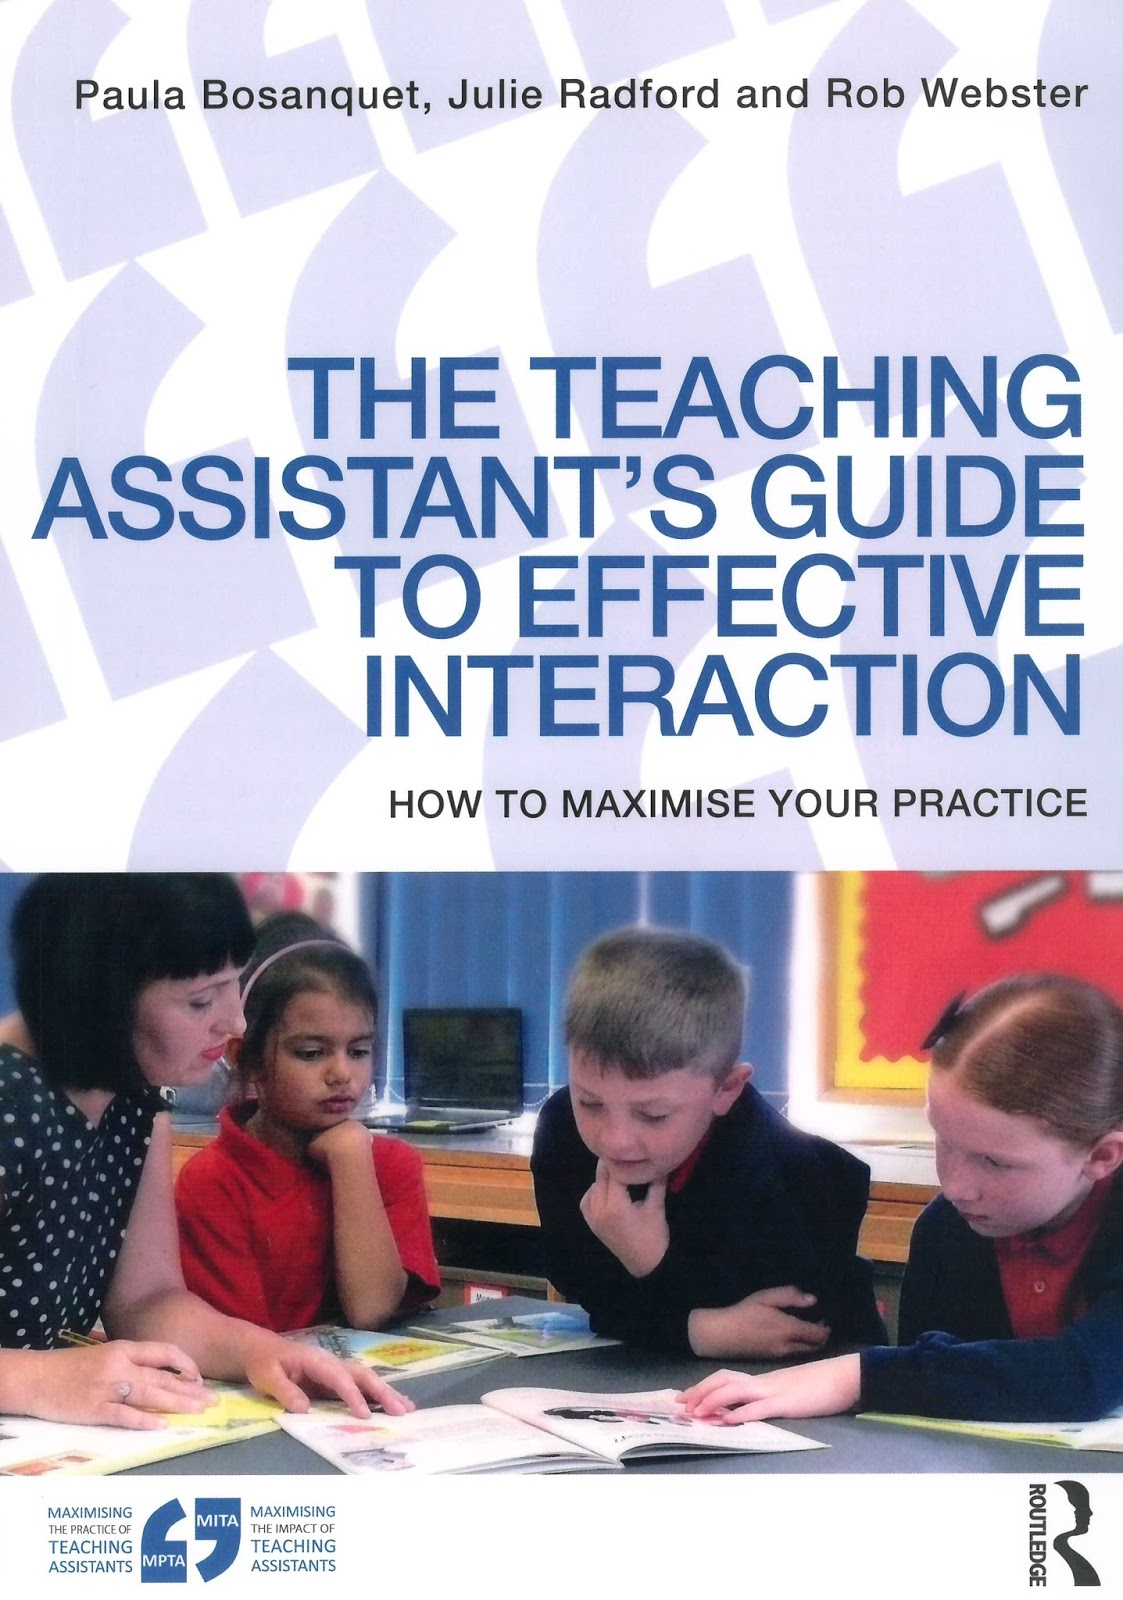 Bosanquet, P. and Radford, J. and Webster, R. (2016) The Teaching Assistant's Guide to Effective Interaction: How to Maximise Your Practice. First published 2016 by Routledge, Printed and bound by CPI Groups (UK) Ltd.